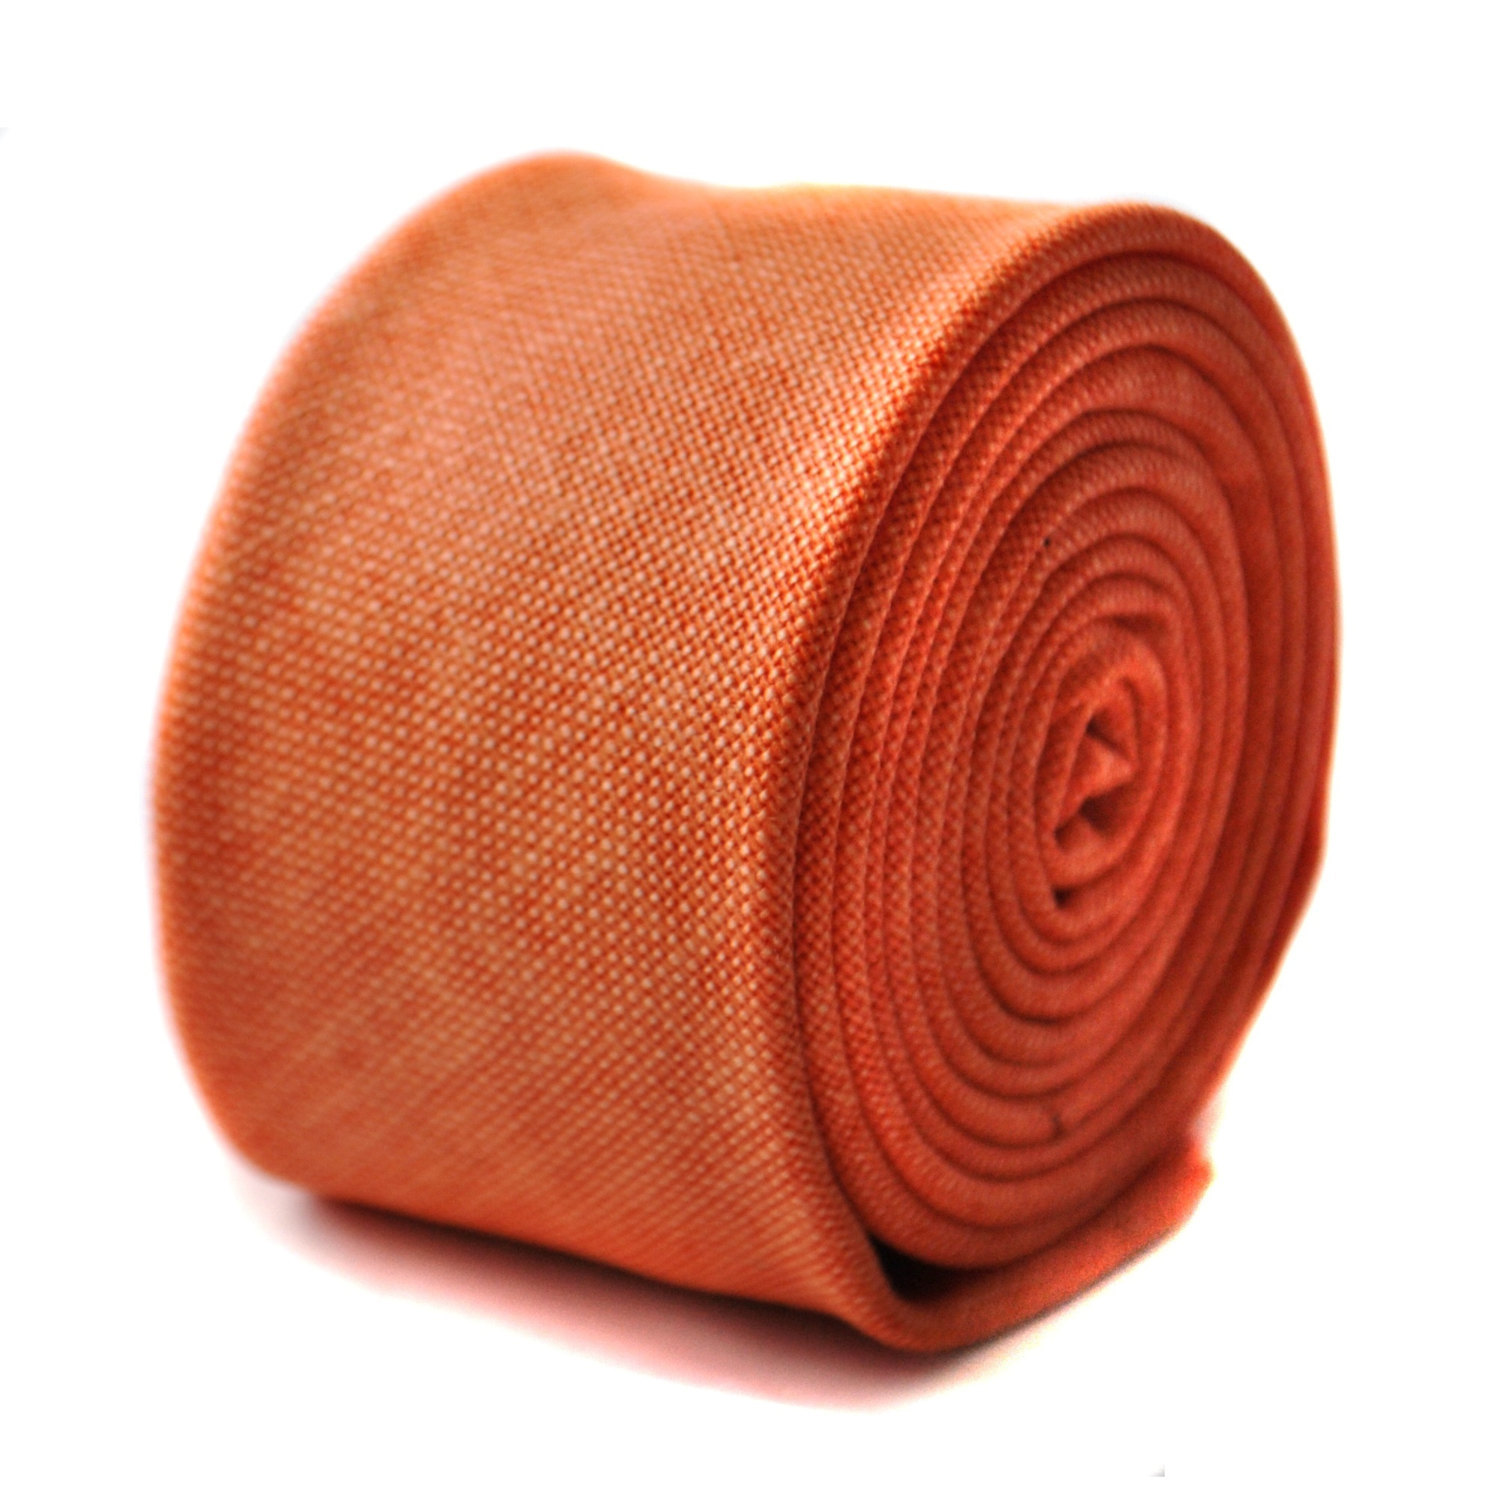 burnt orange skinny linen textured tie by Frederick Thomas FT1641